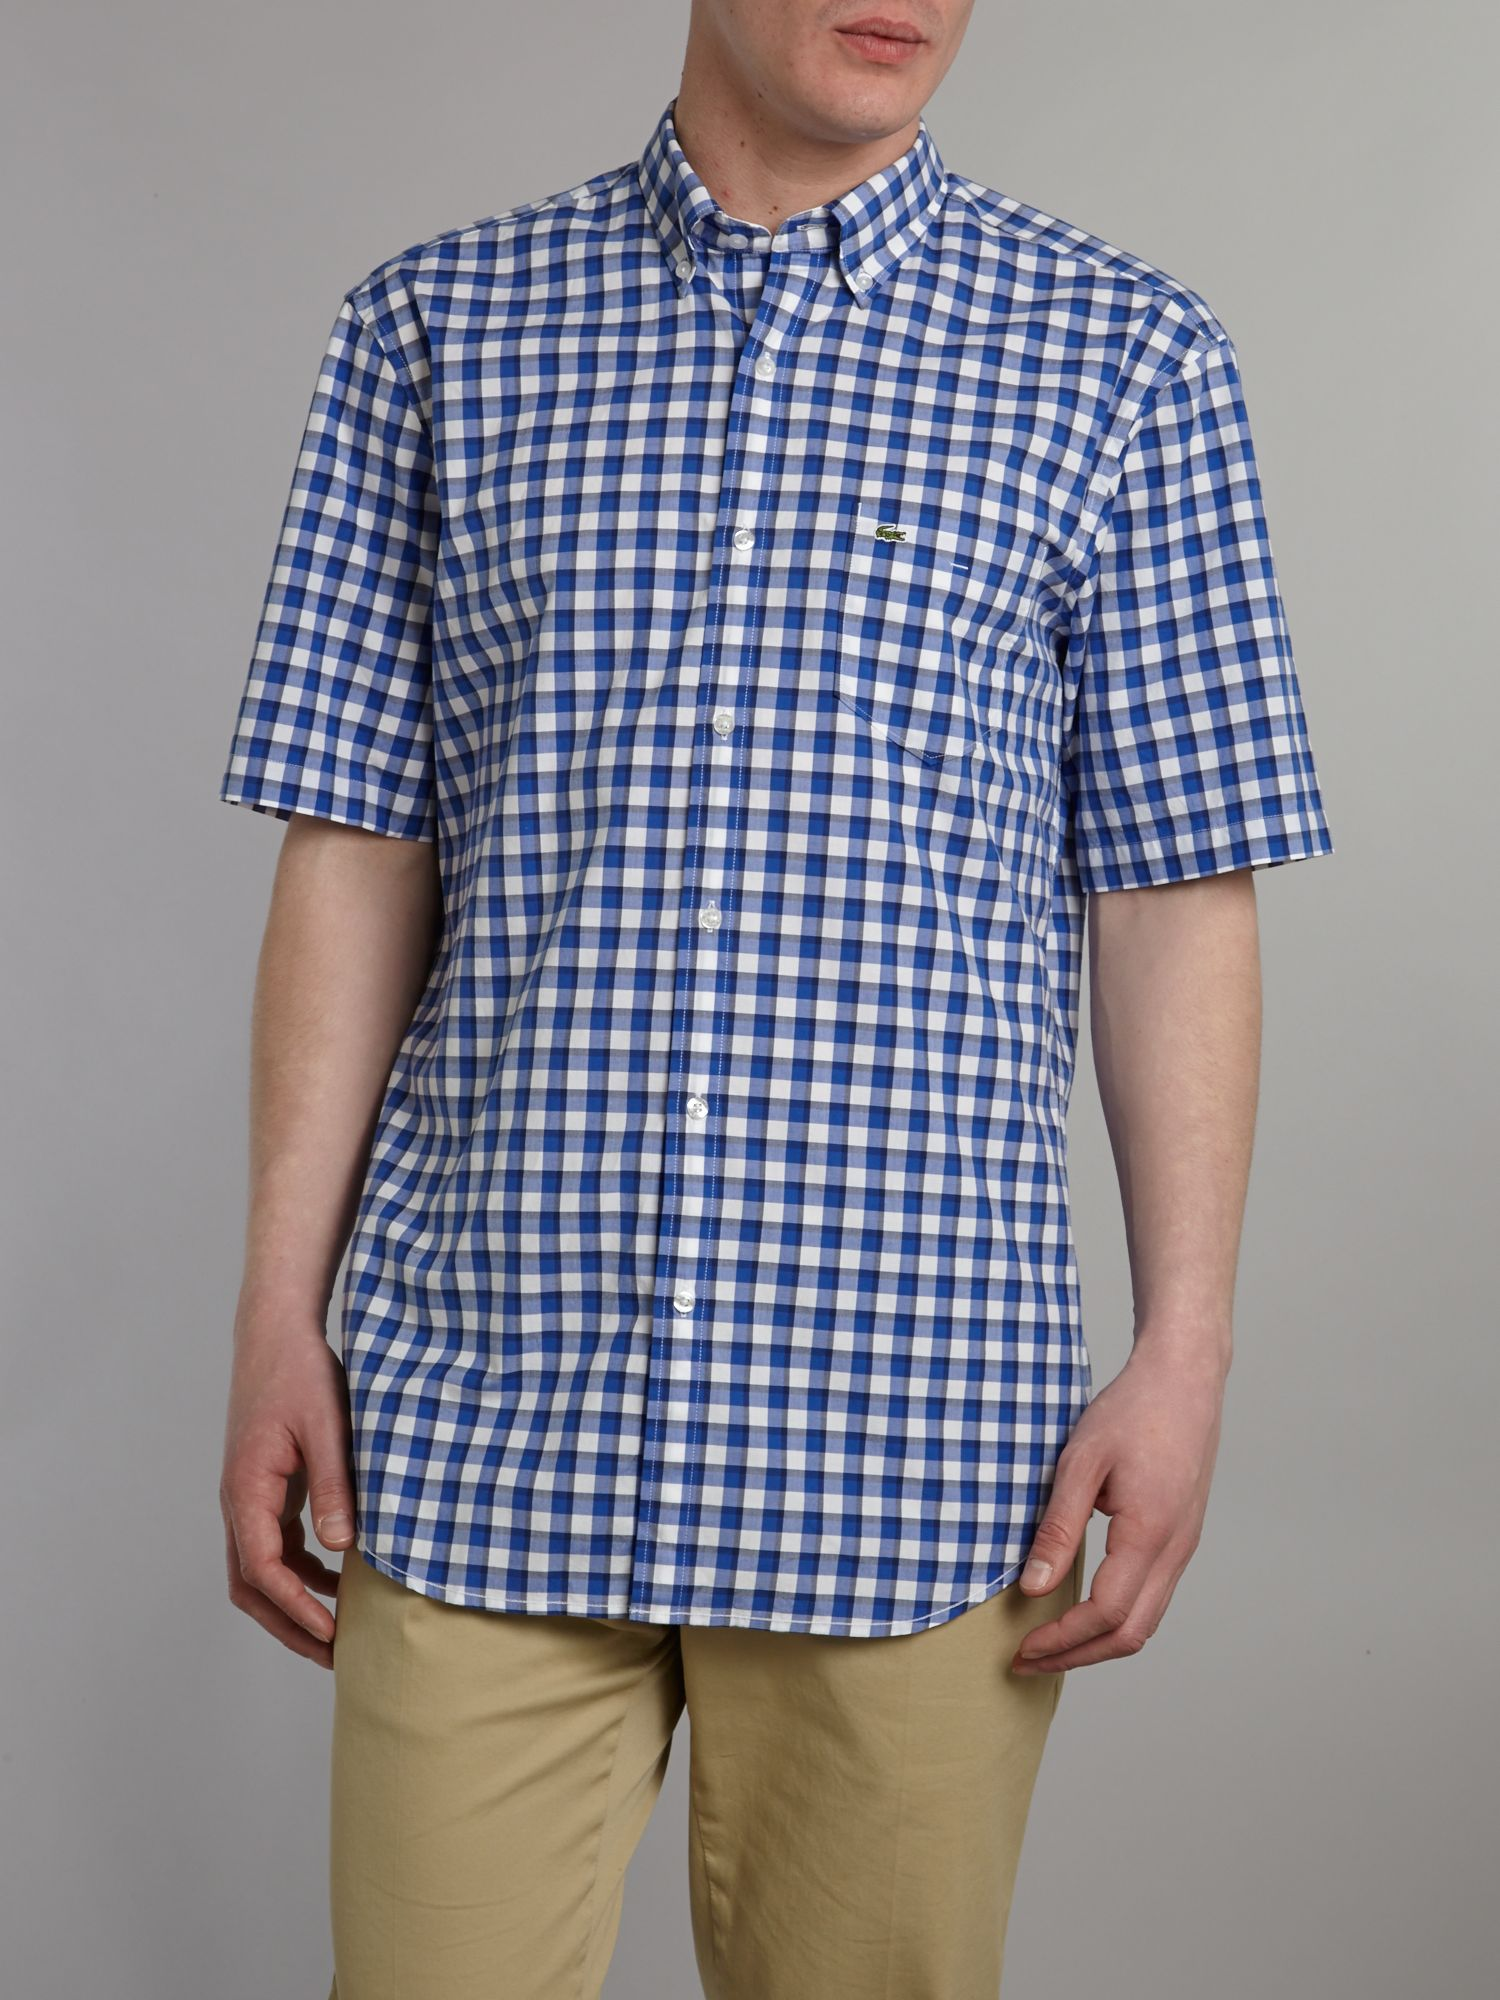 Short sleeved check shirt